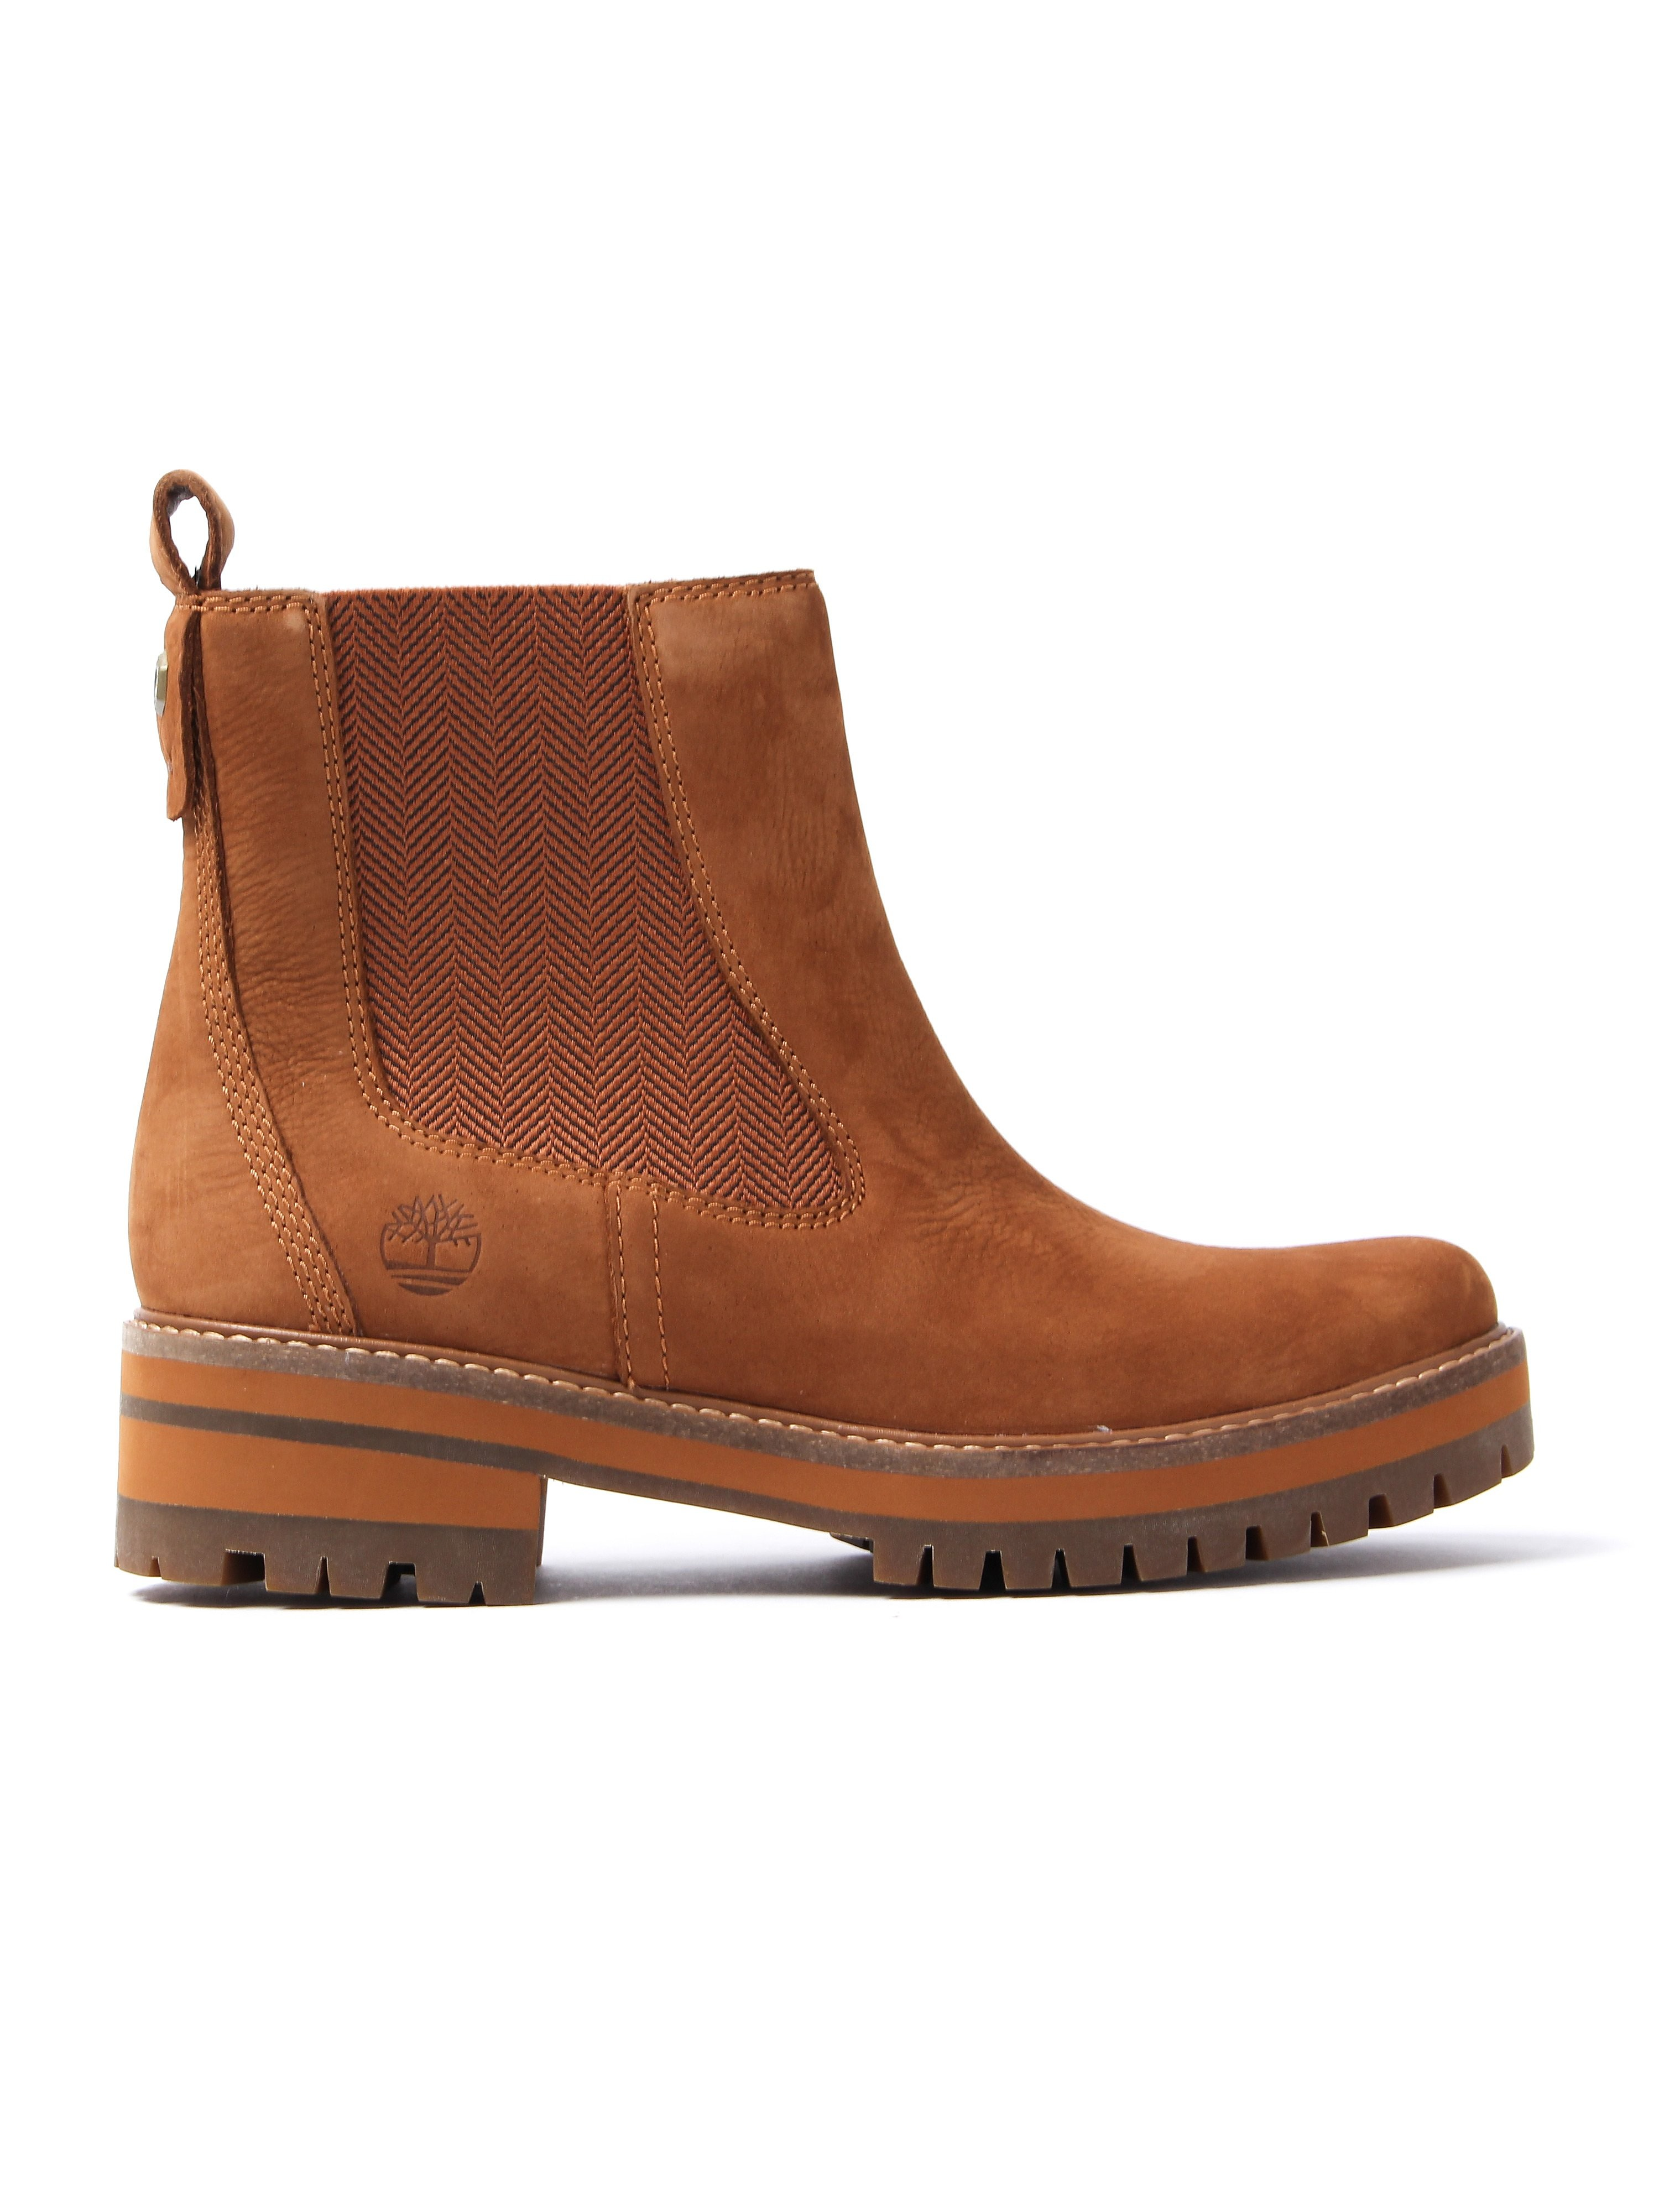 Timberland Women's Courmayeur Valley Chelsea Boots – Rust